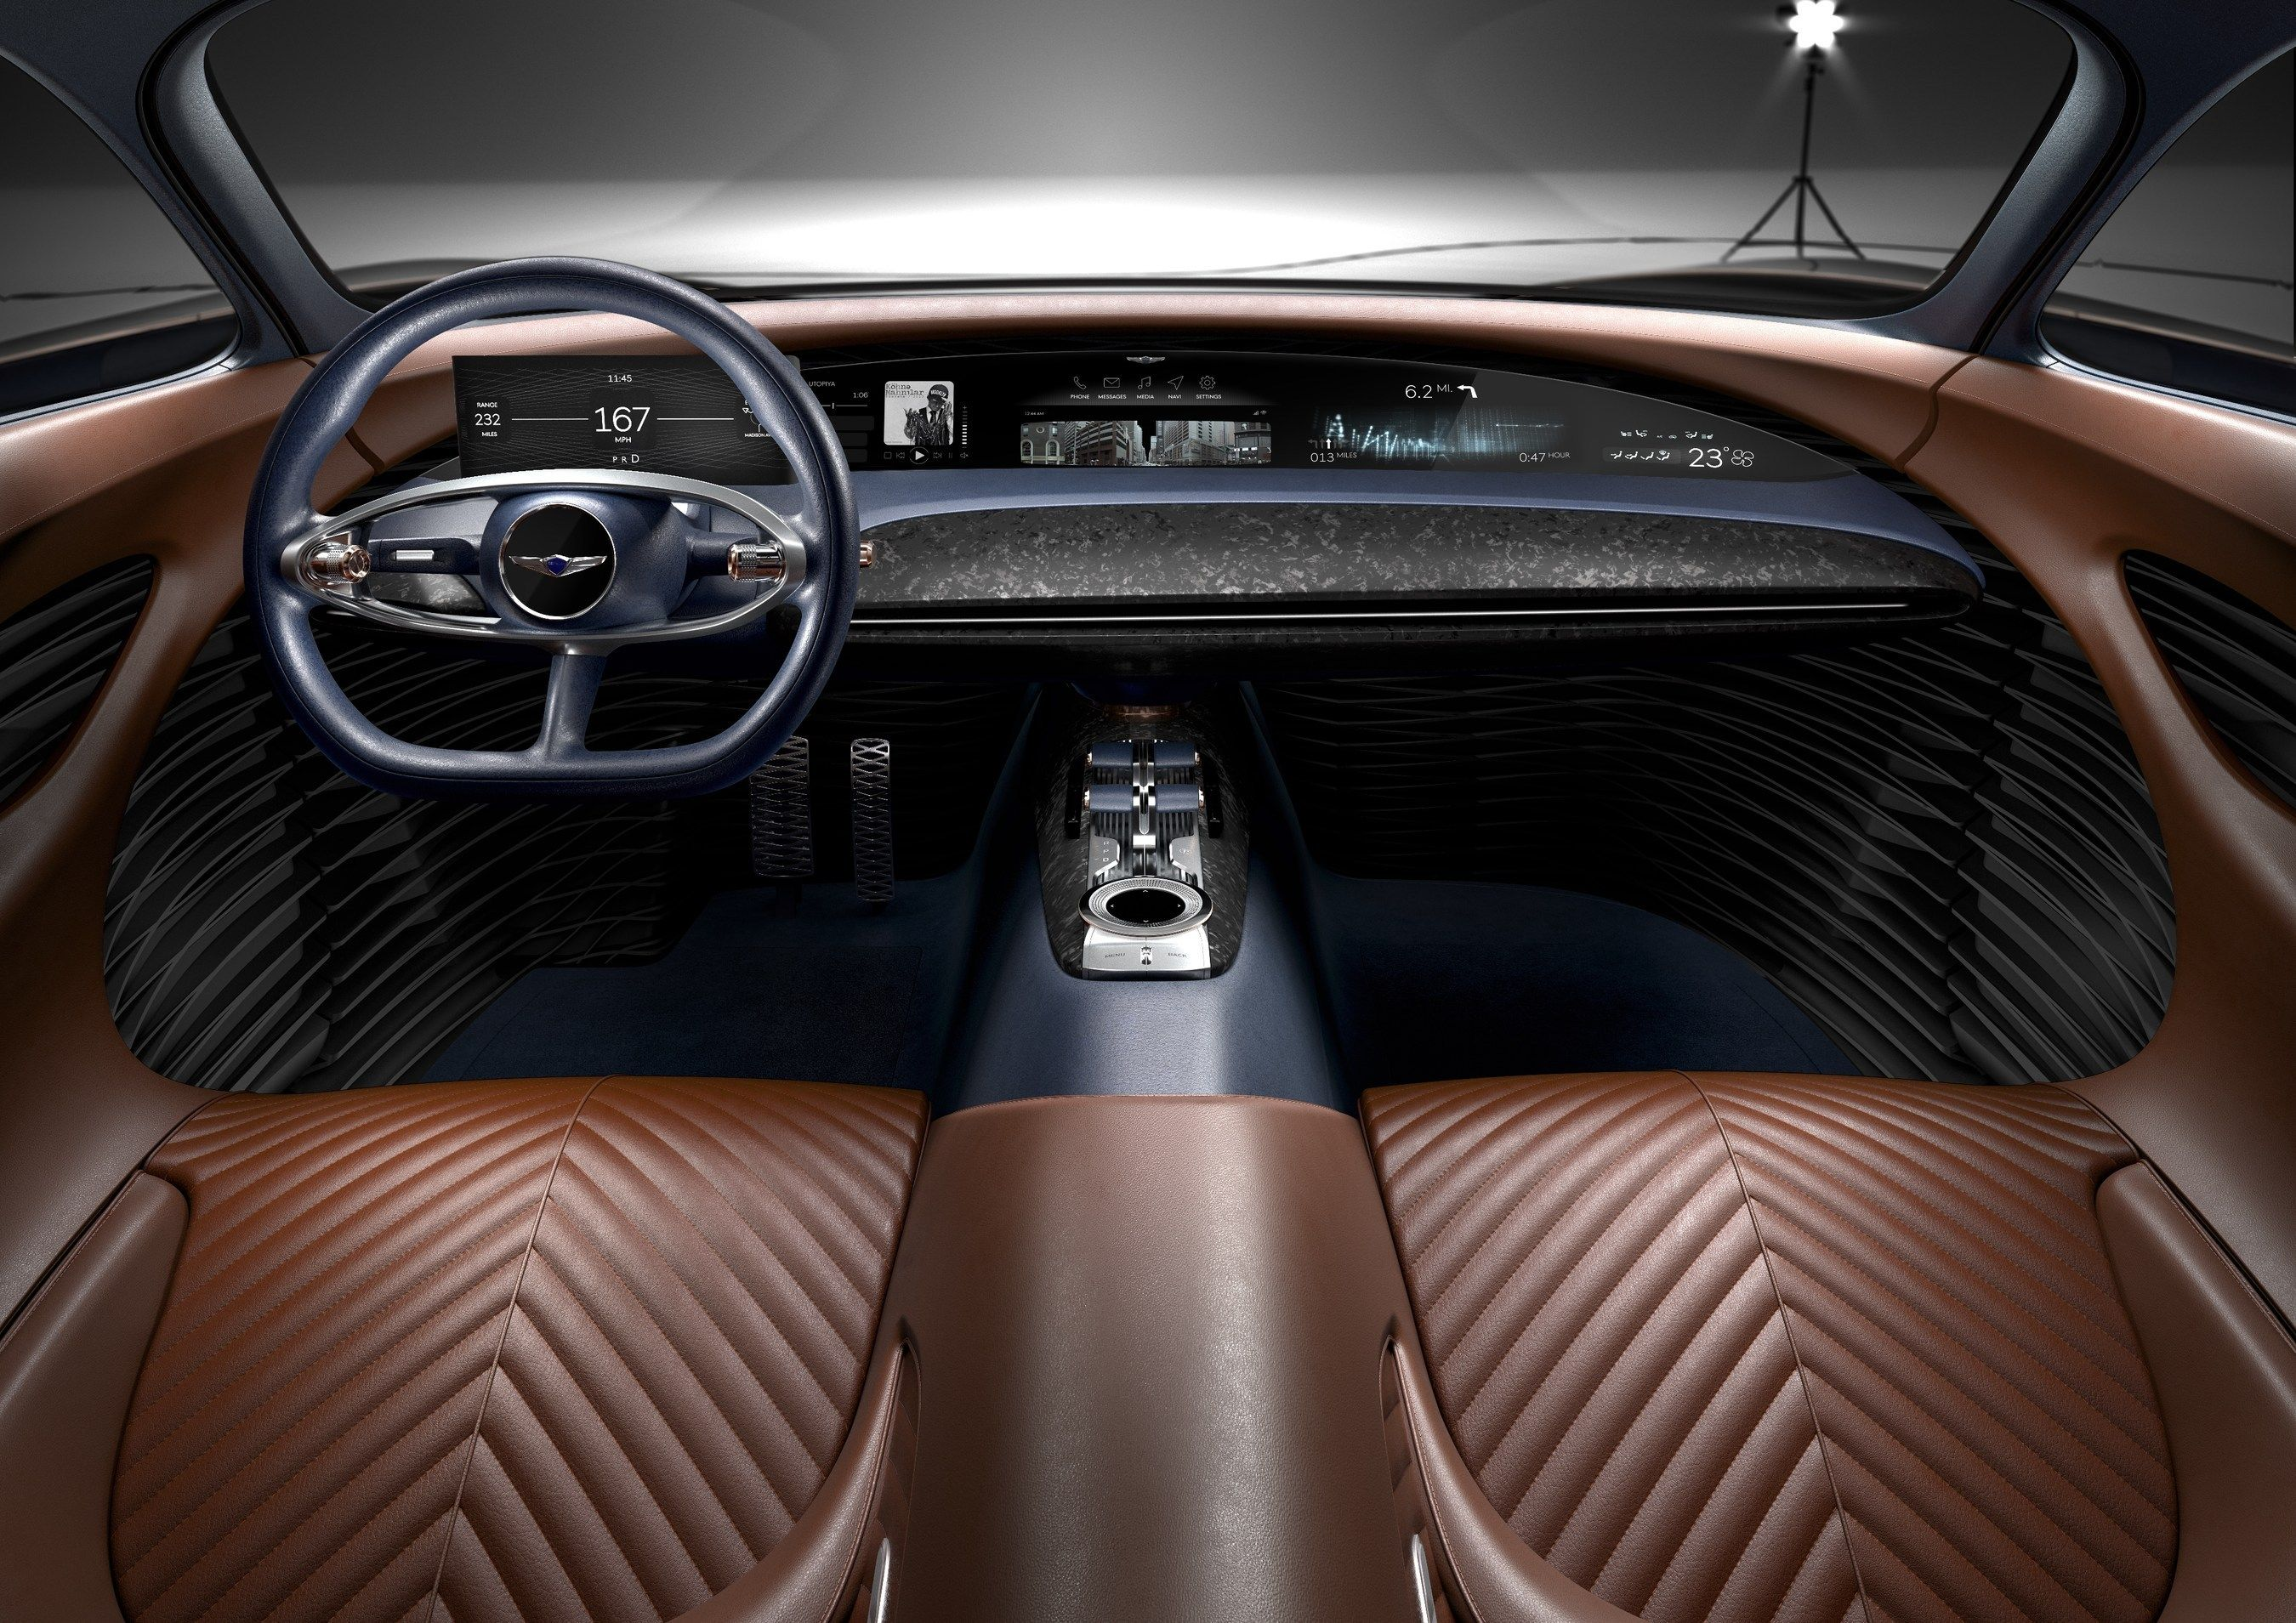 Genesis Unveiled Their Luxury Electric Car Essentia Concept At The New York Auto Show Luxury Car Interior Concept Cars Concept Car Interior